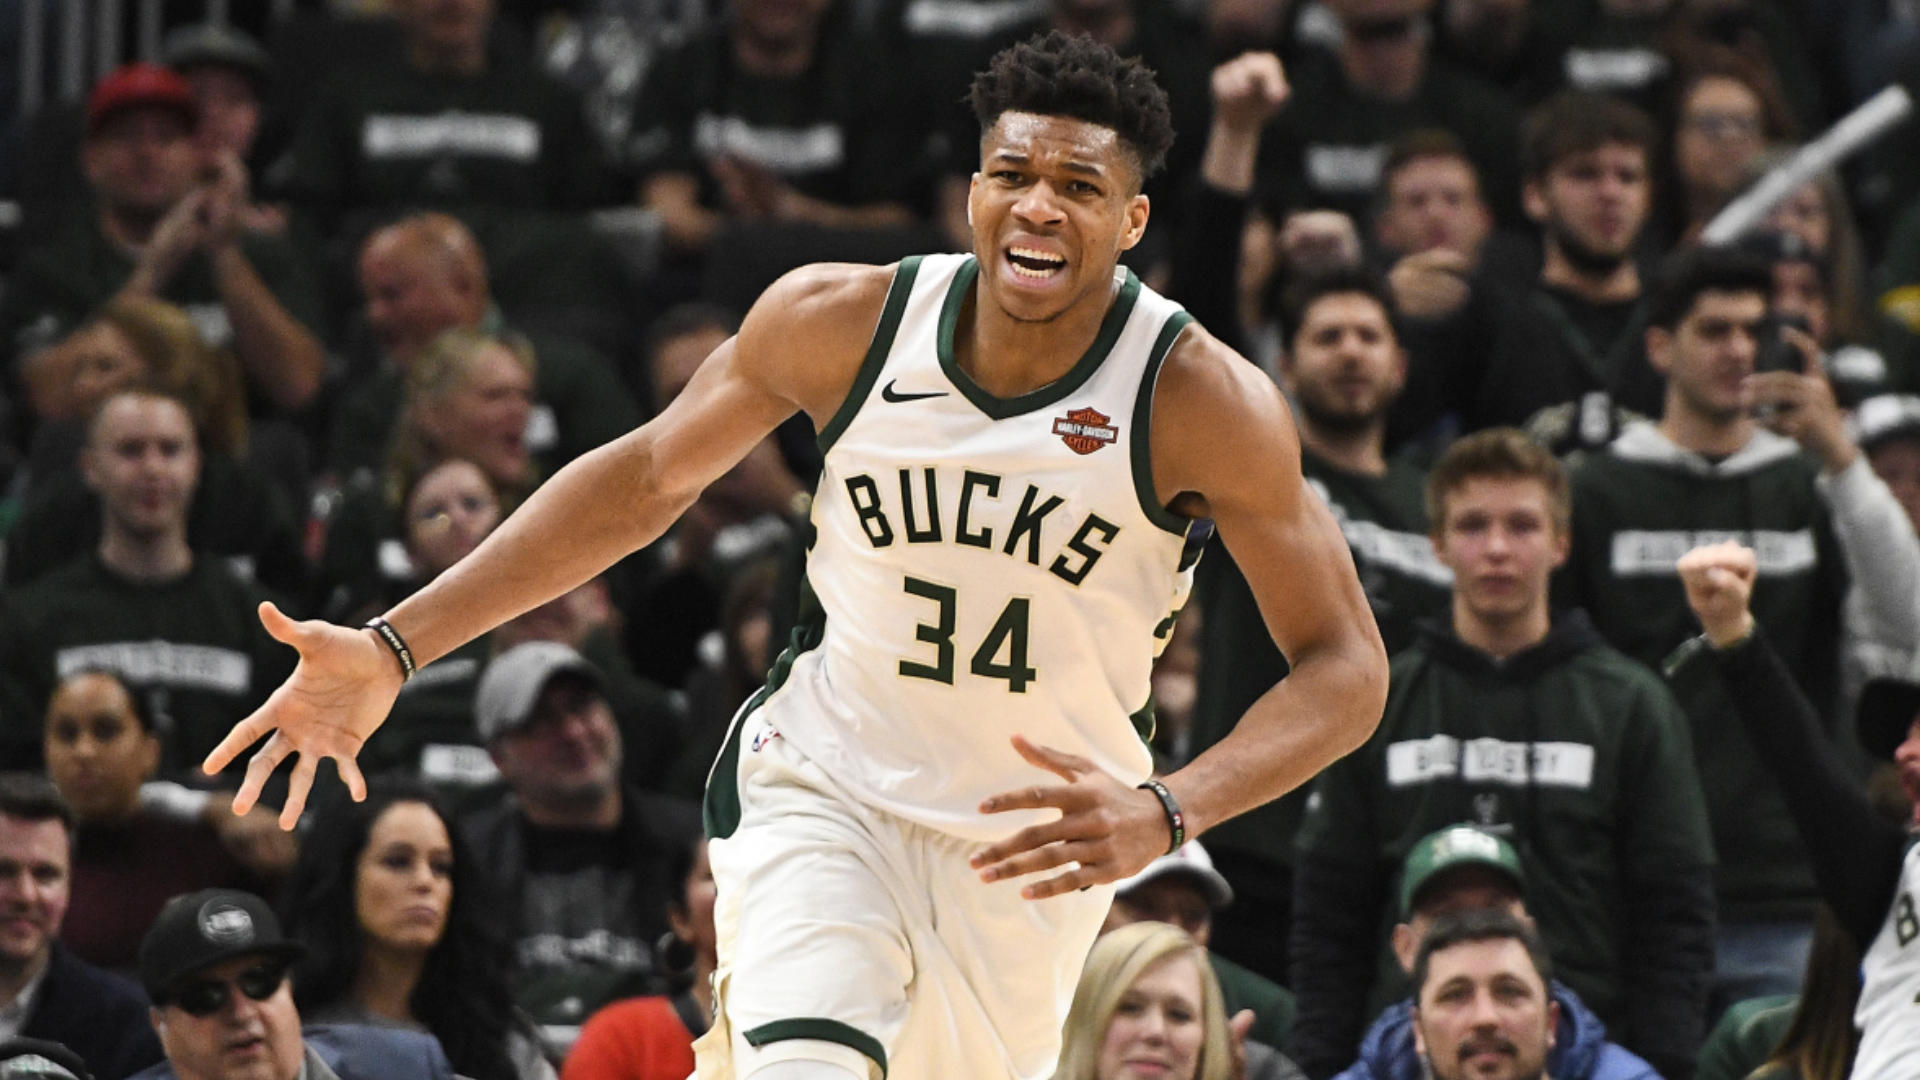 NBA playoffs scores, highlights, results: Bucks sweep Pistons, advance to face Celtics; Jazz force Game 5 vs. Rockets